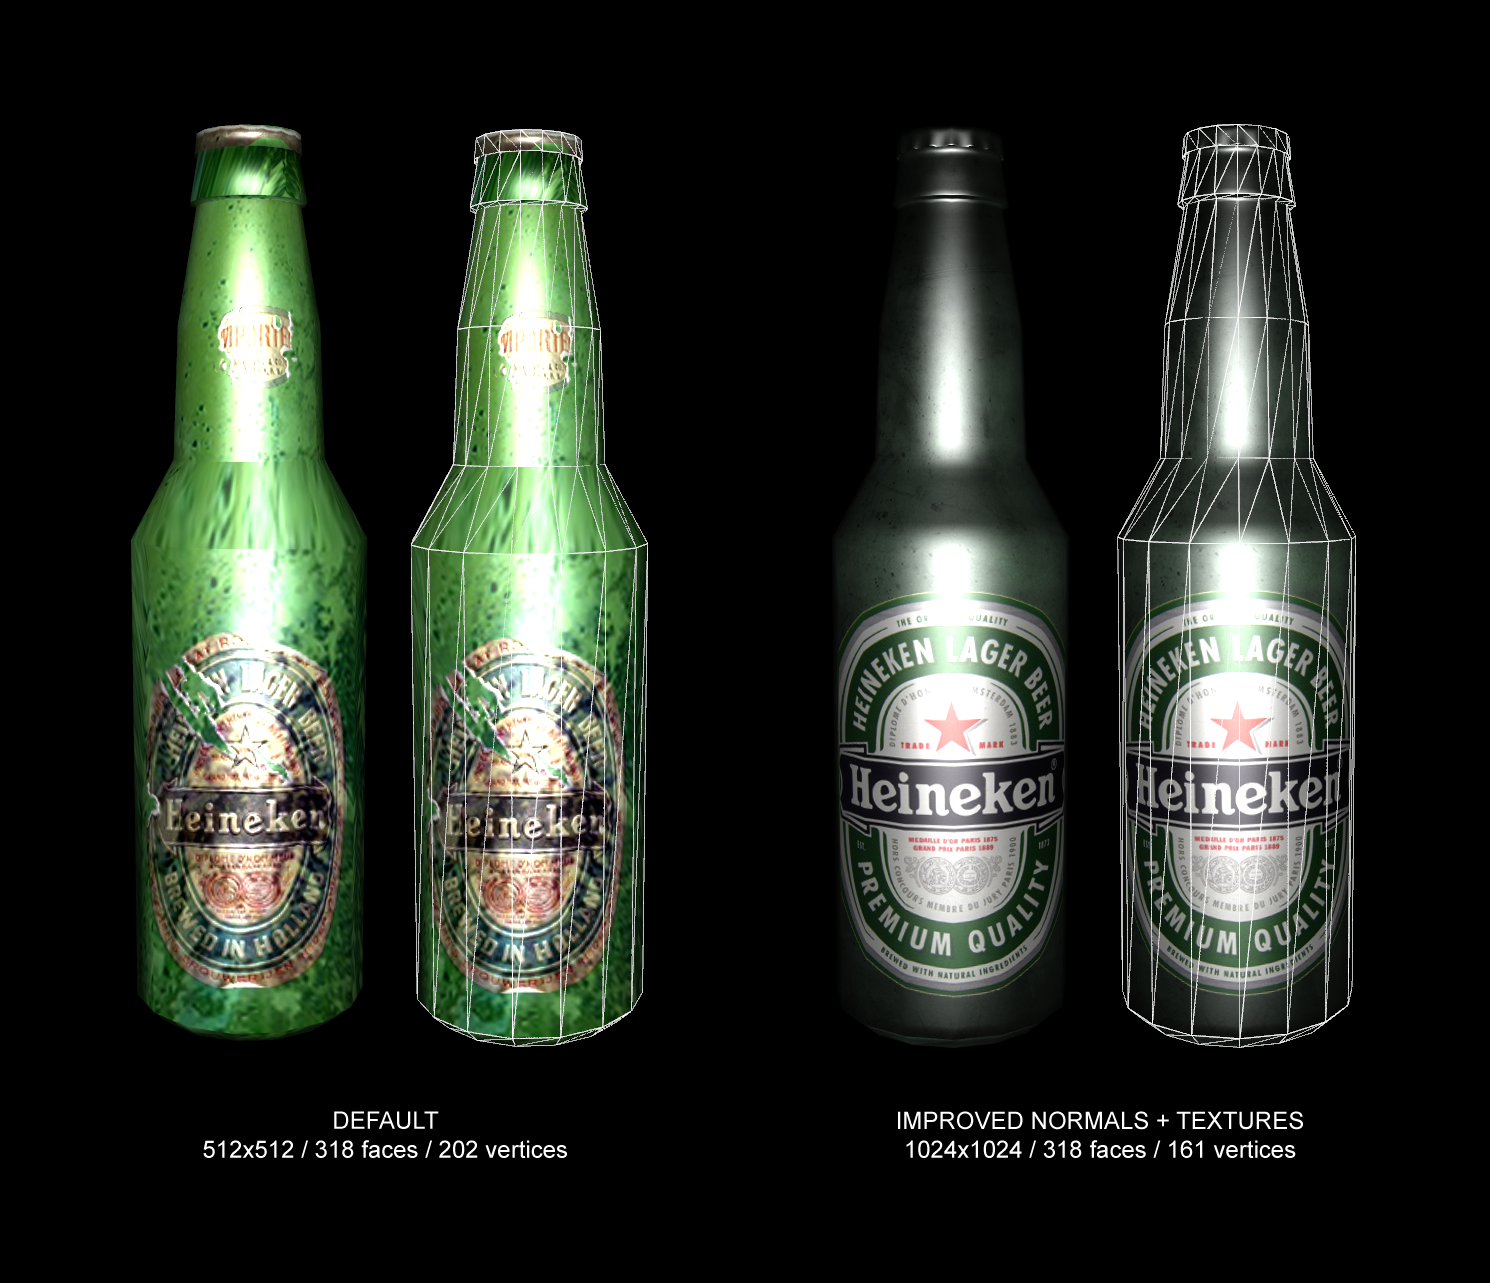 Beer comparison at Fallout New Vegas - mods and community